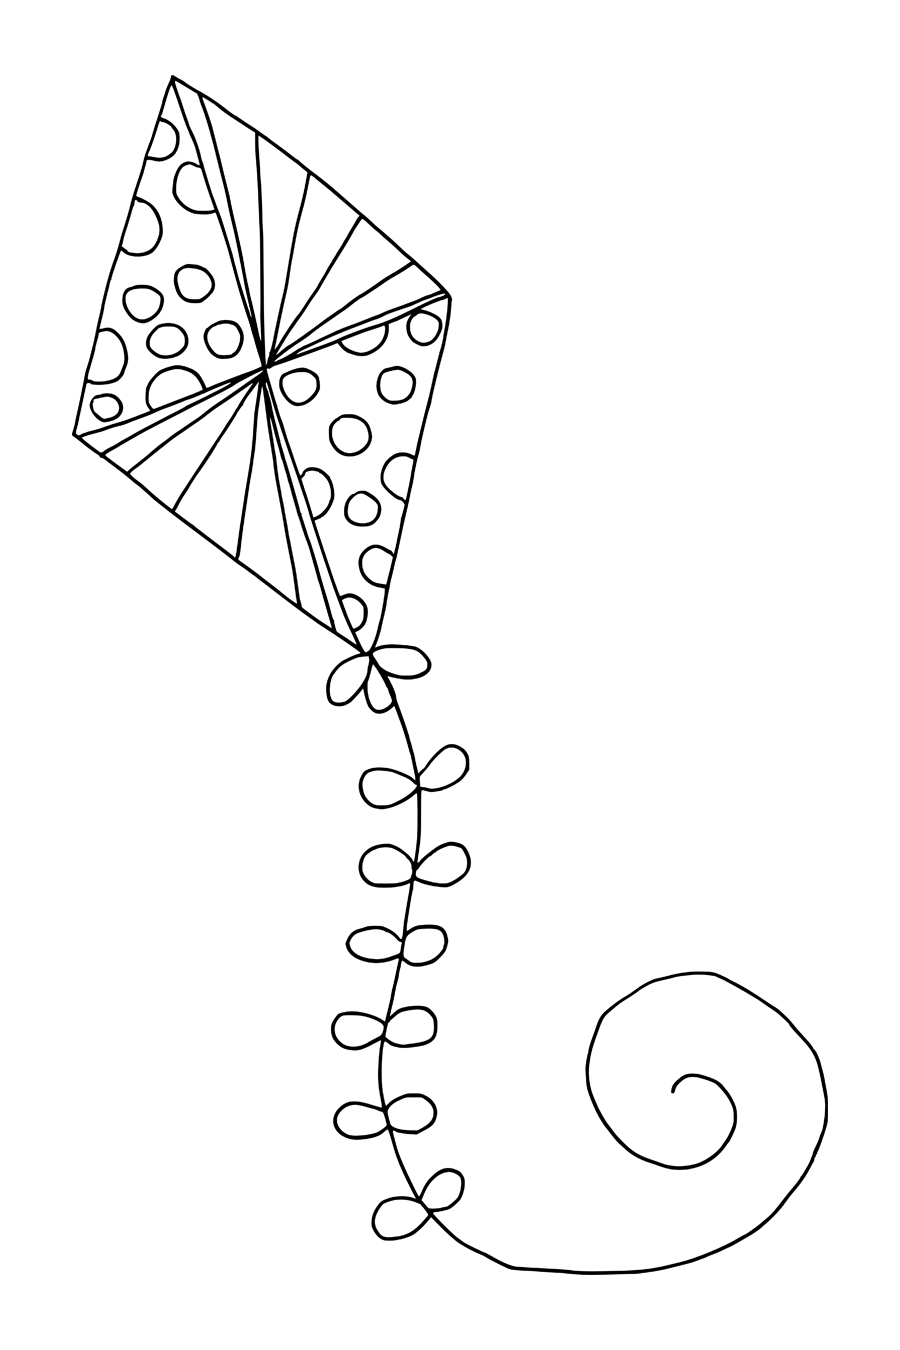 kite for coloring free printable kite coloring pages for kids for coloring kite 1 1